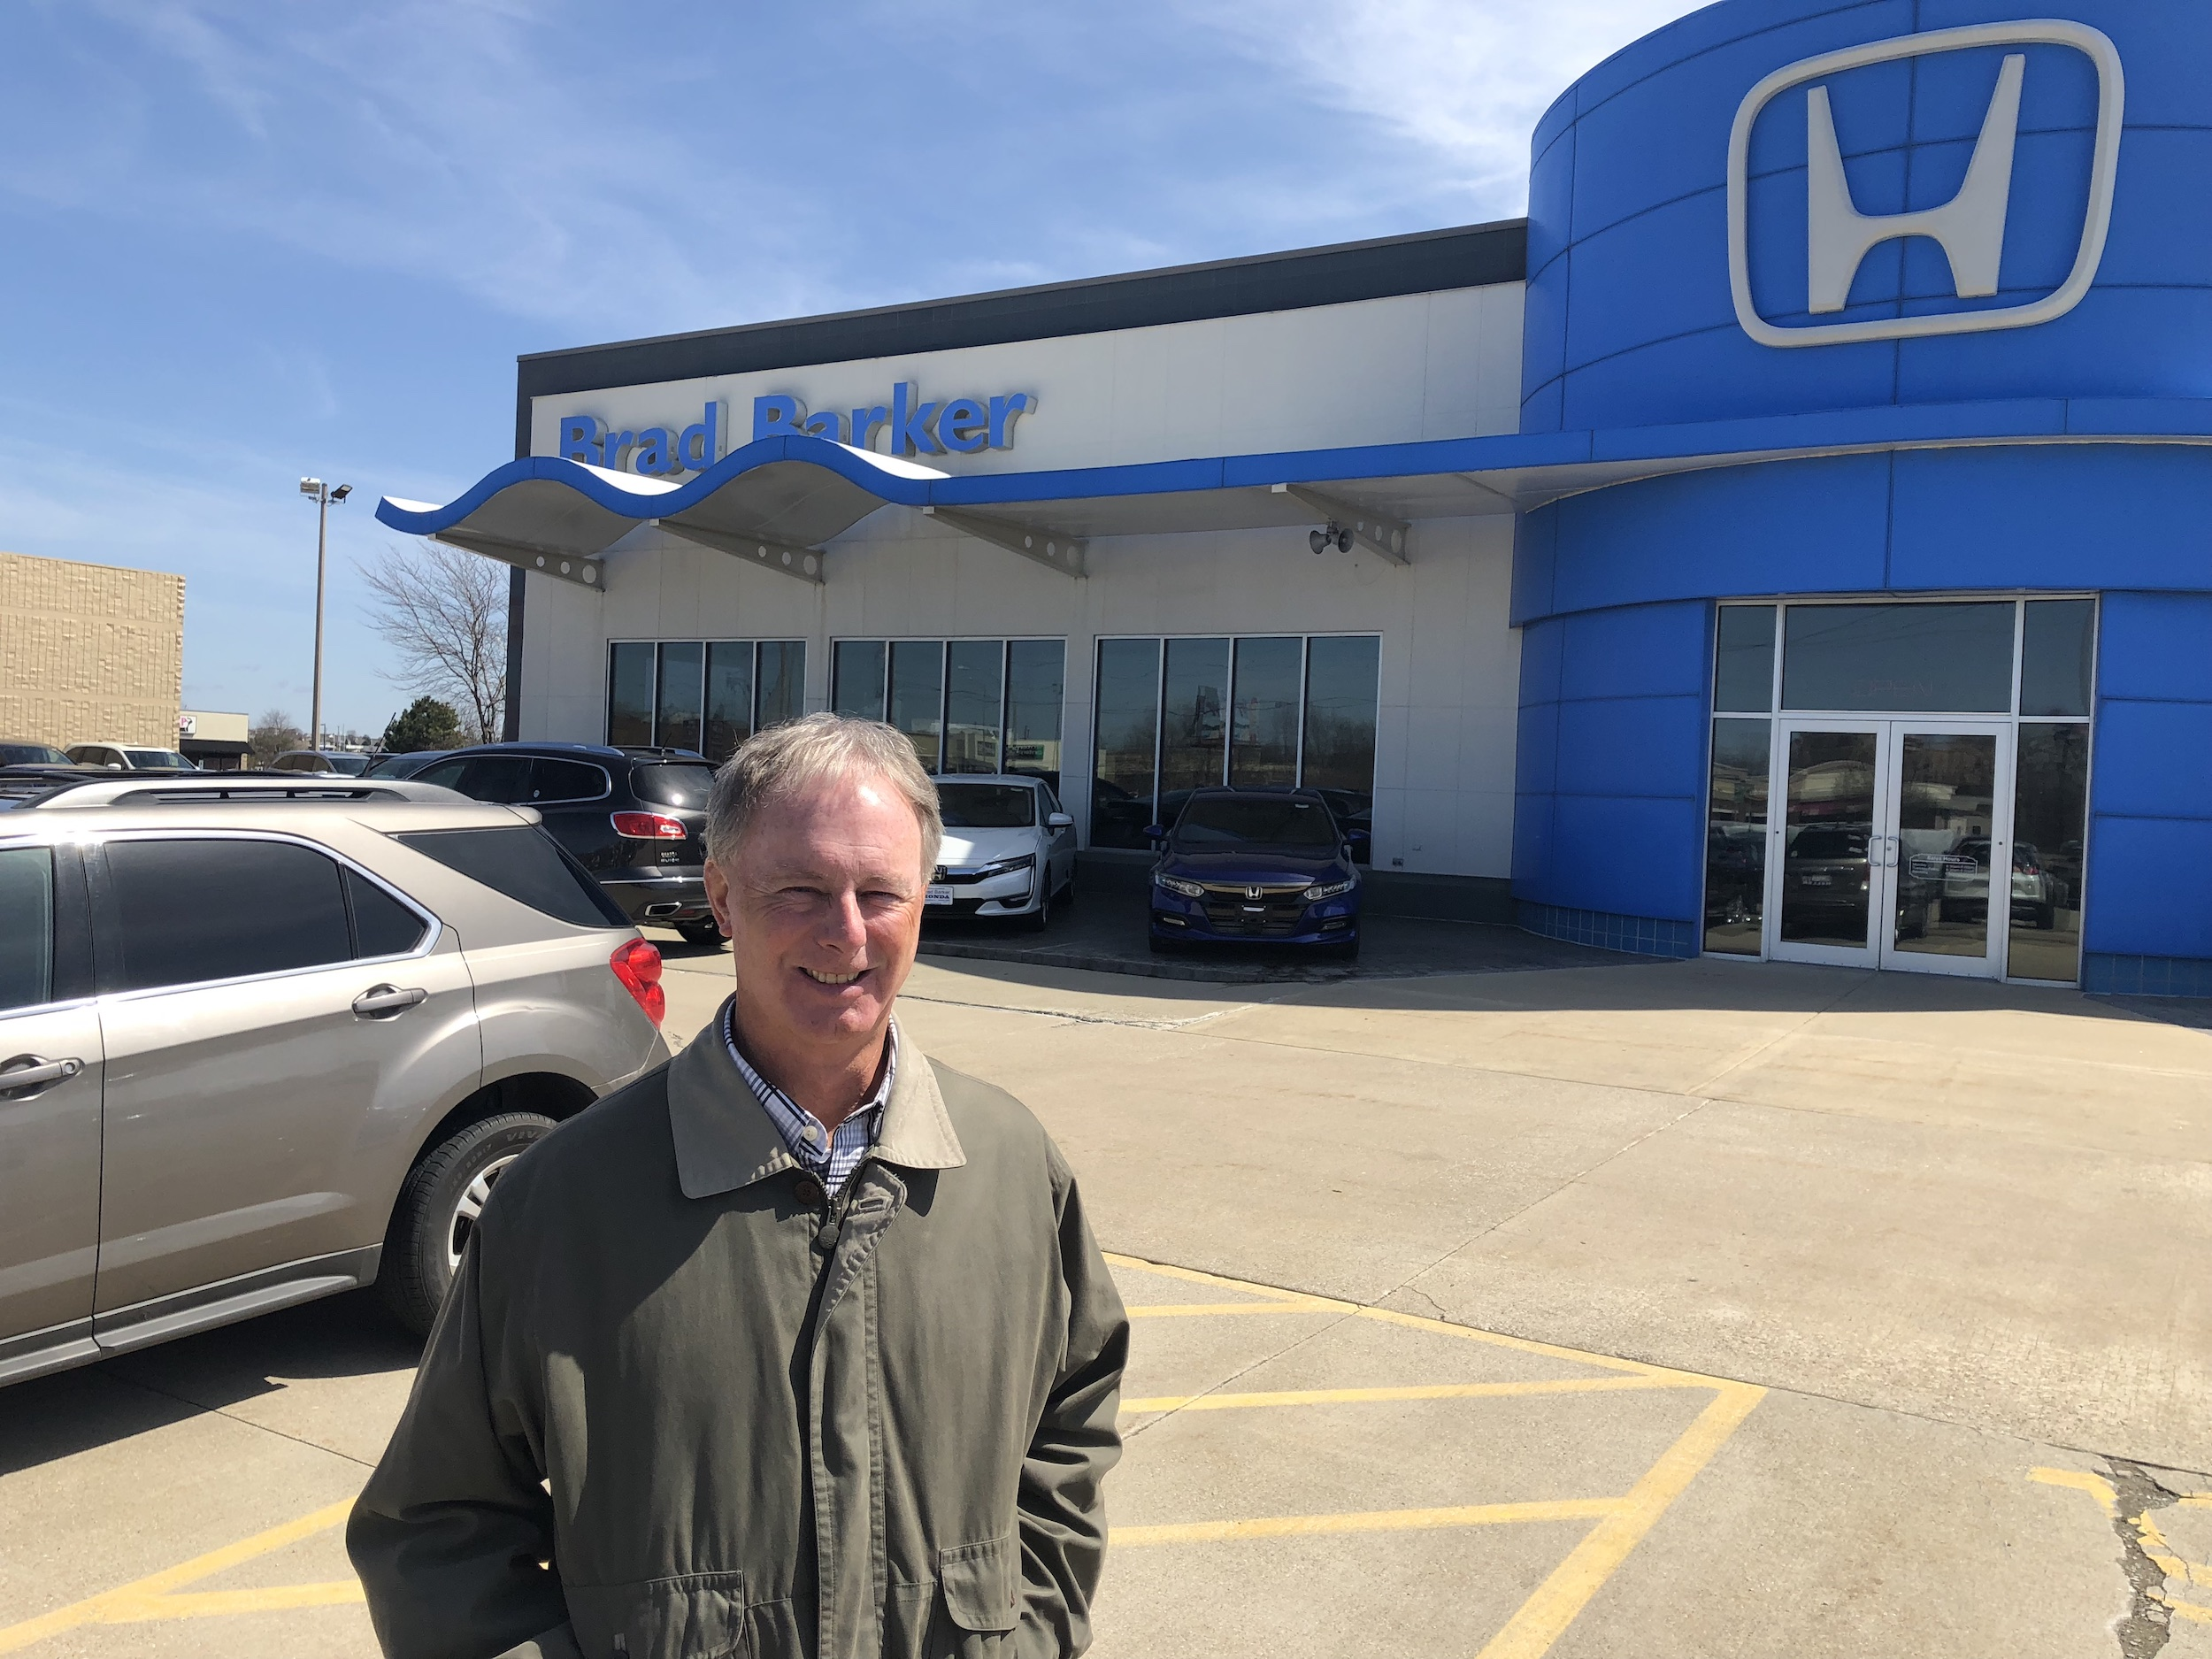 Brad Barker stands outside his Honda dealership, which has stood in this location since 1987. (Image credit: Erik Prenzler)